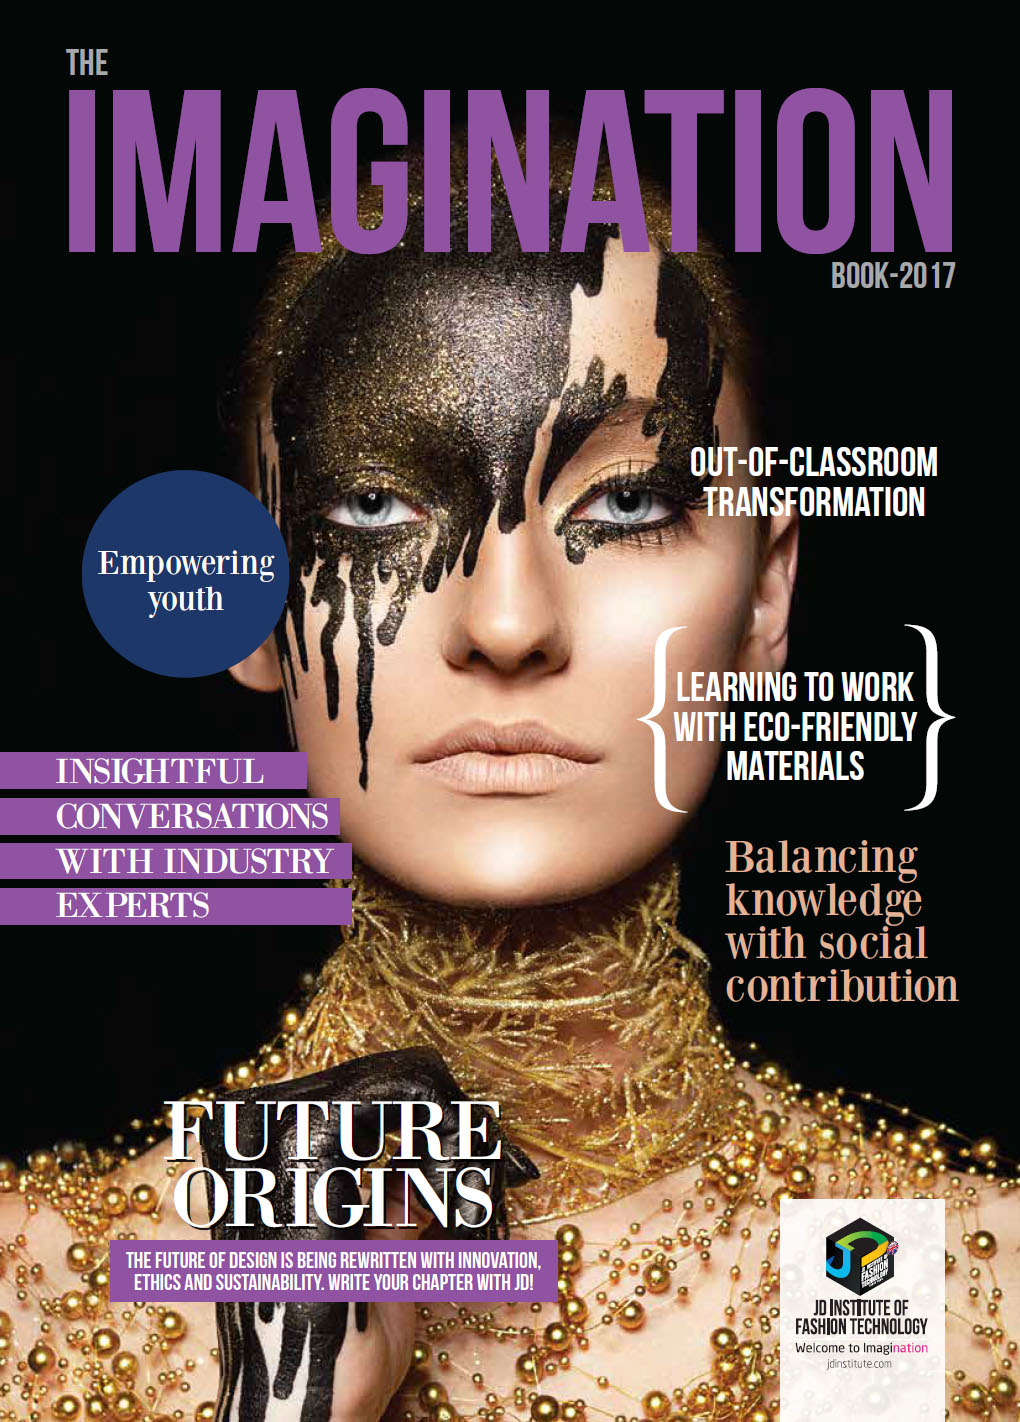 best college for fashion designing - Imagination Book 2017 Cover - Imagination Books